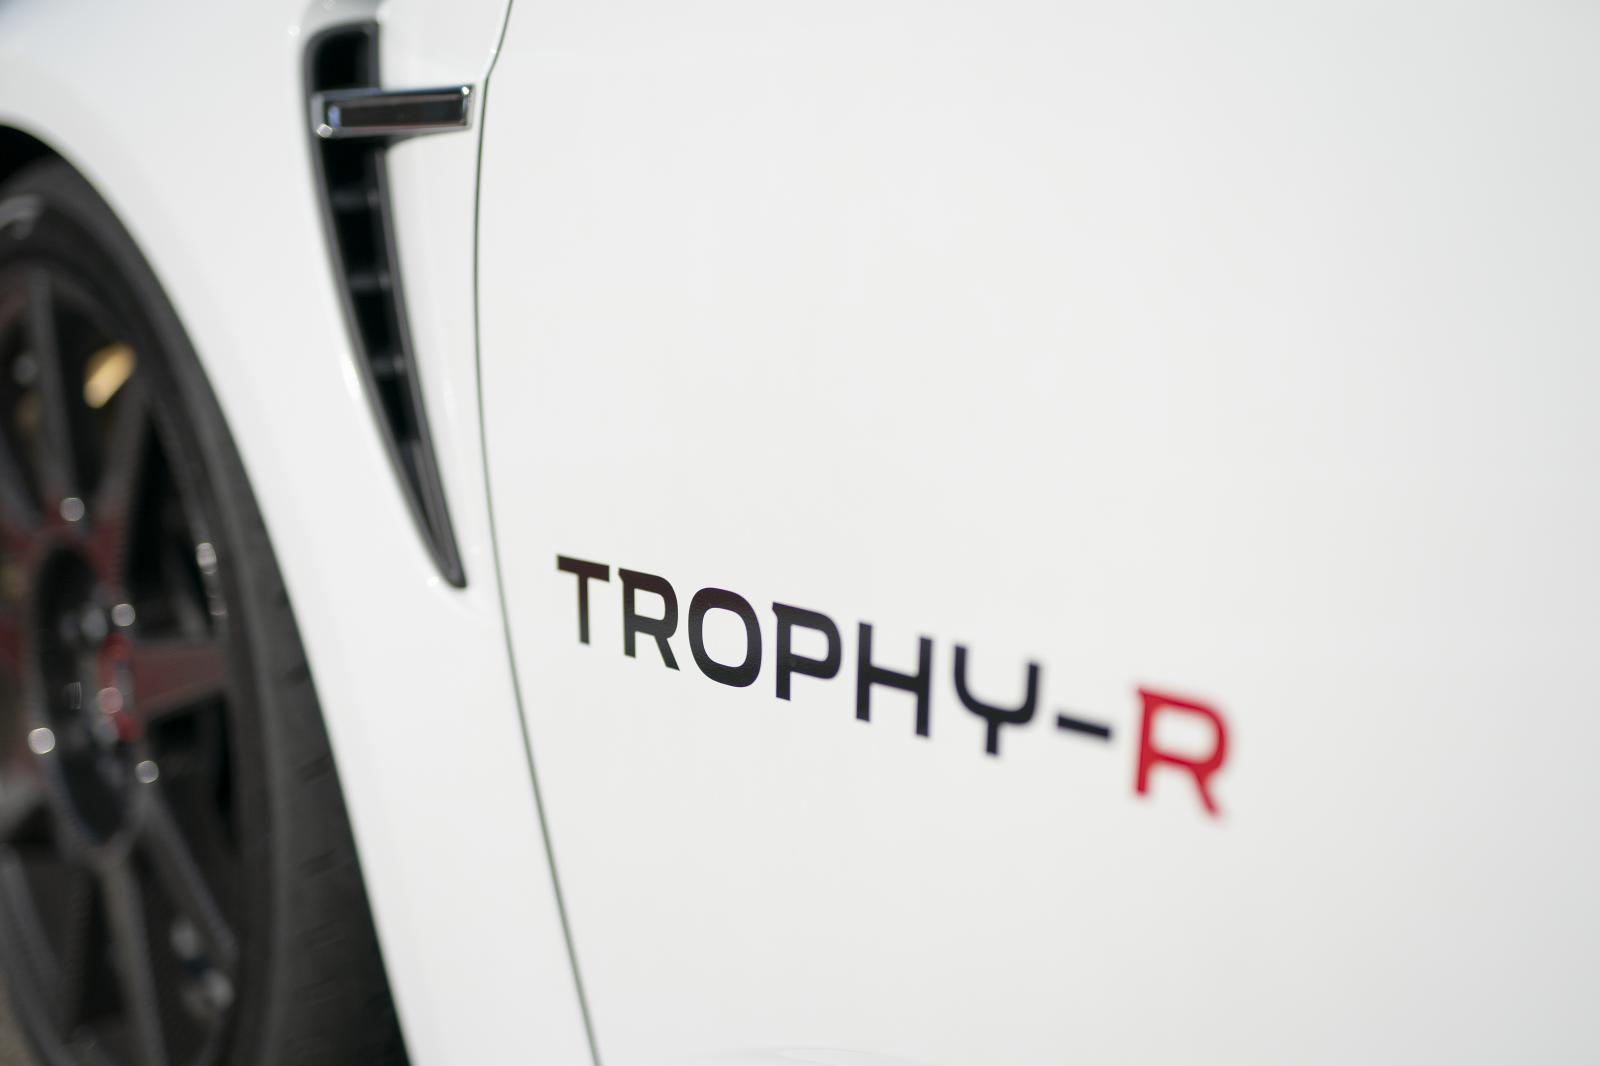 Megane R.S. Trophy-R decal